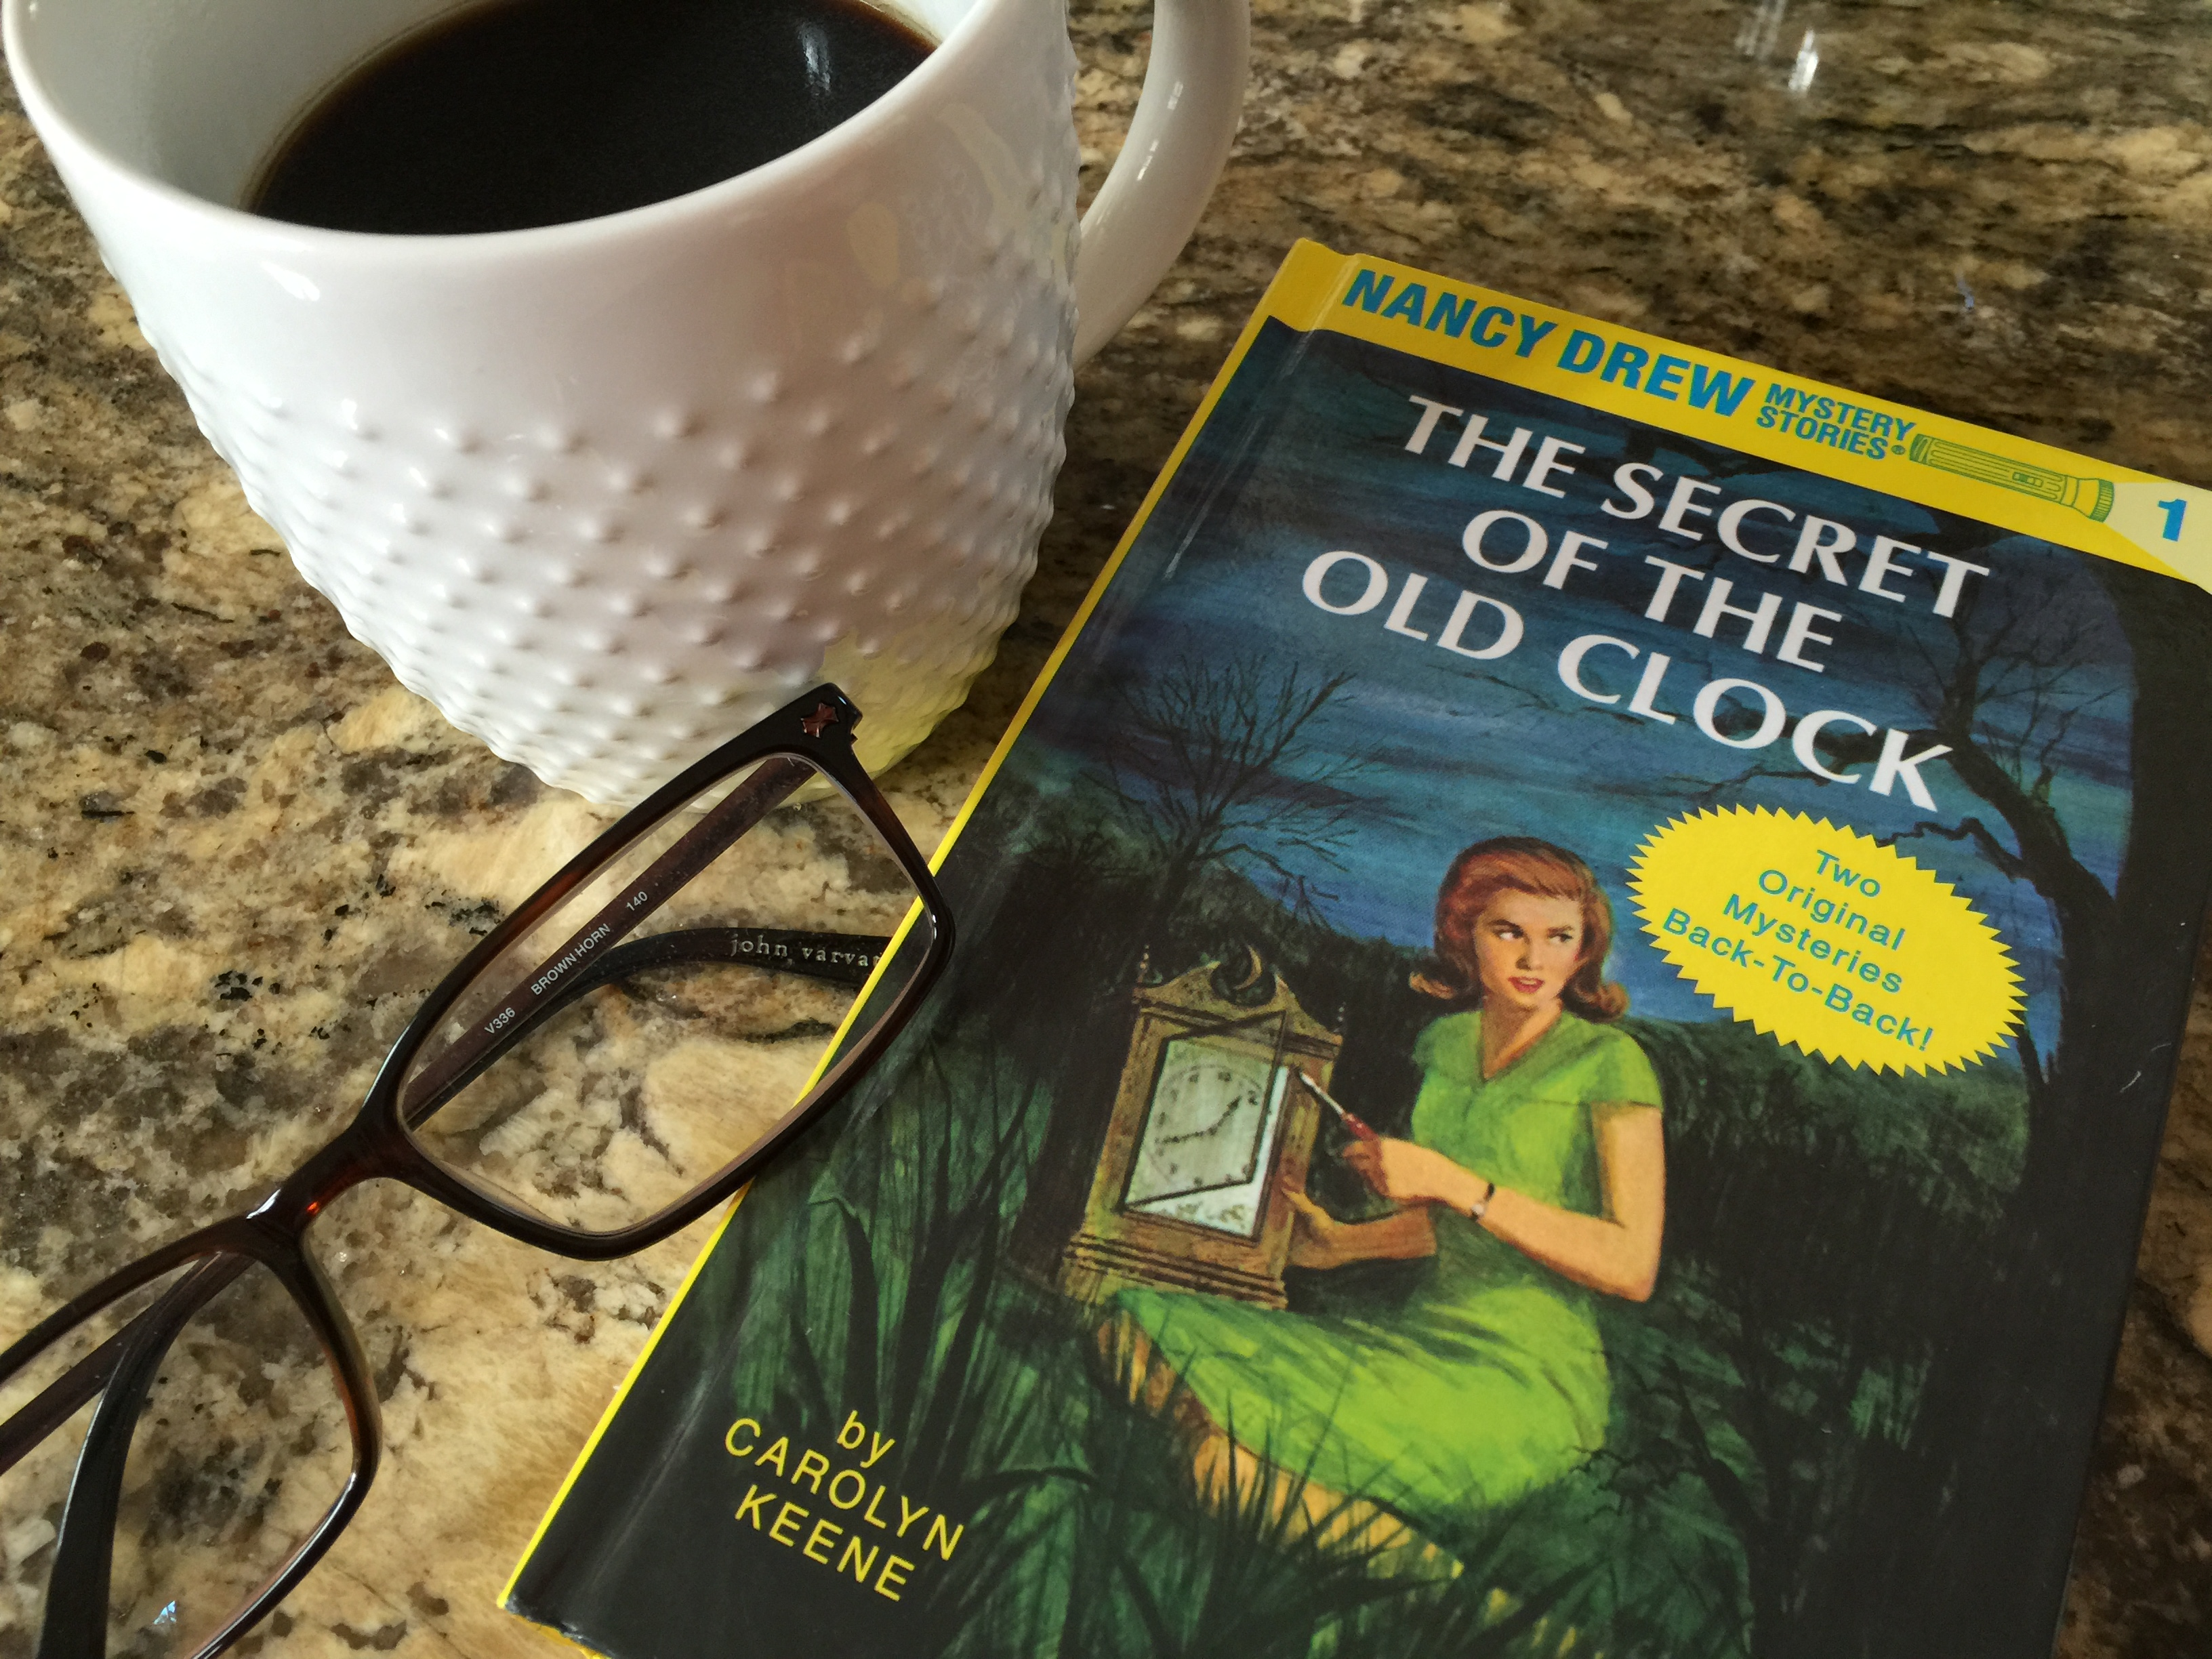 Nancy Drew Mysteries: Revisiting Her Books as an Adult